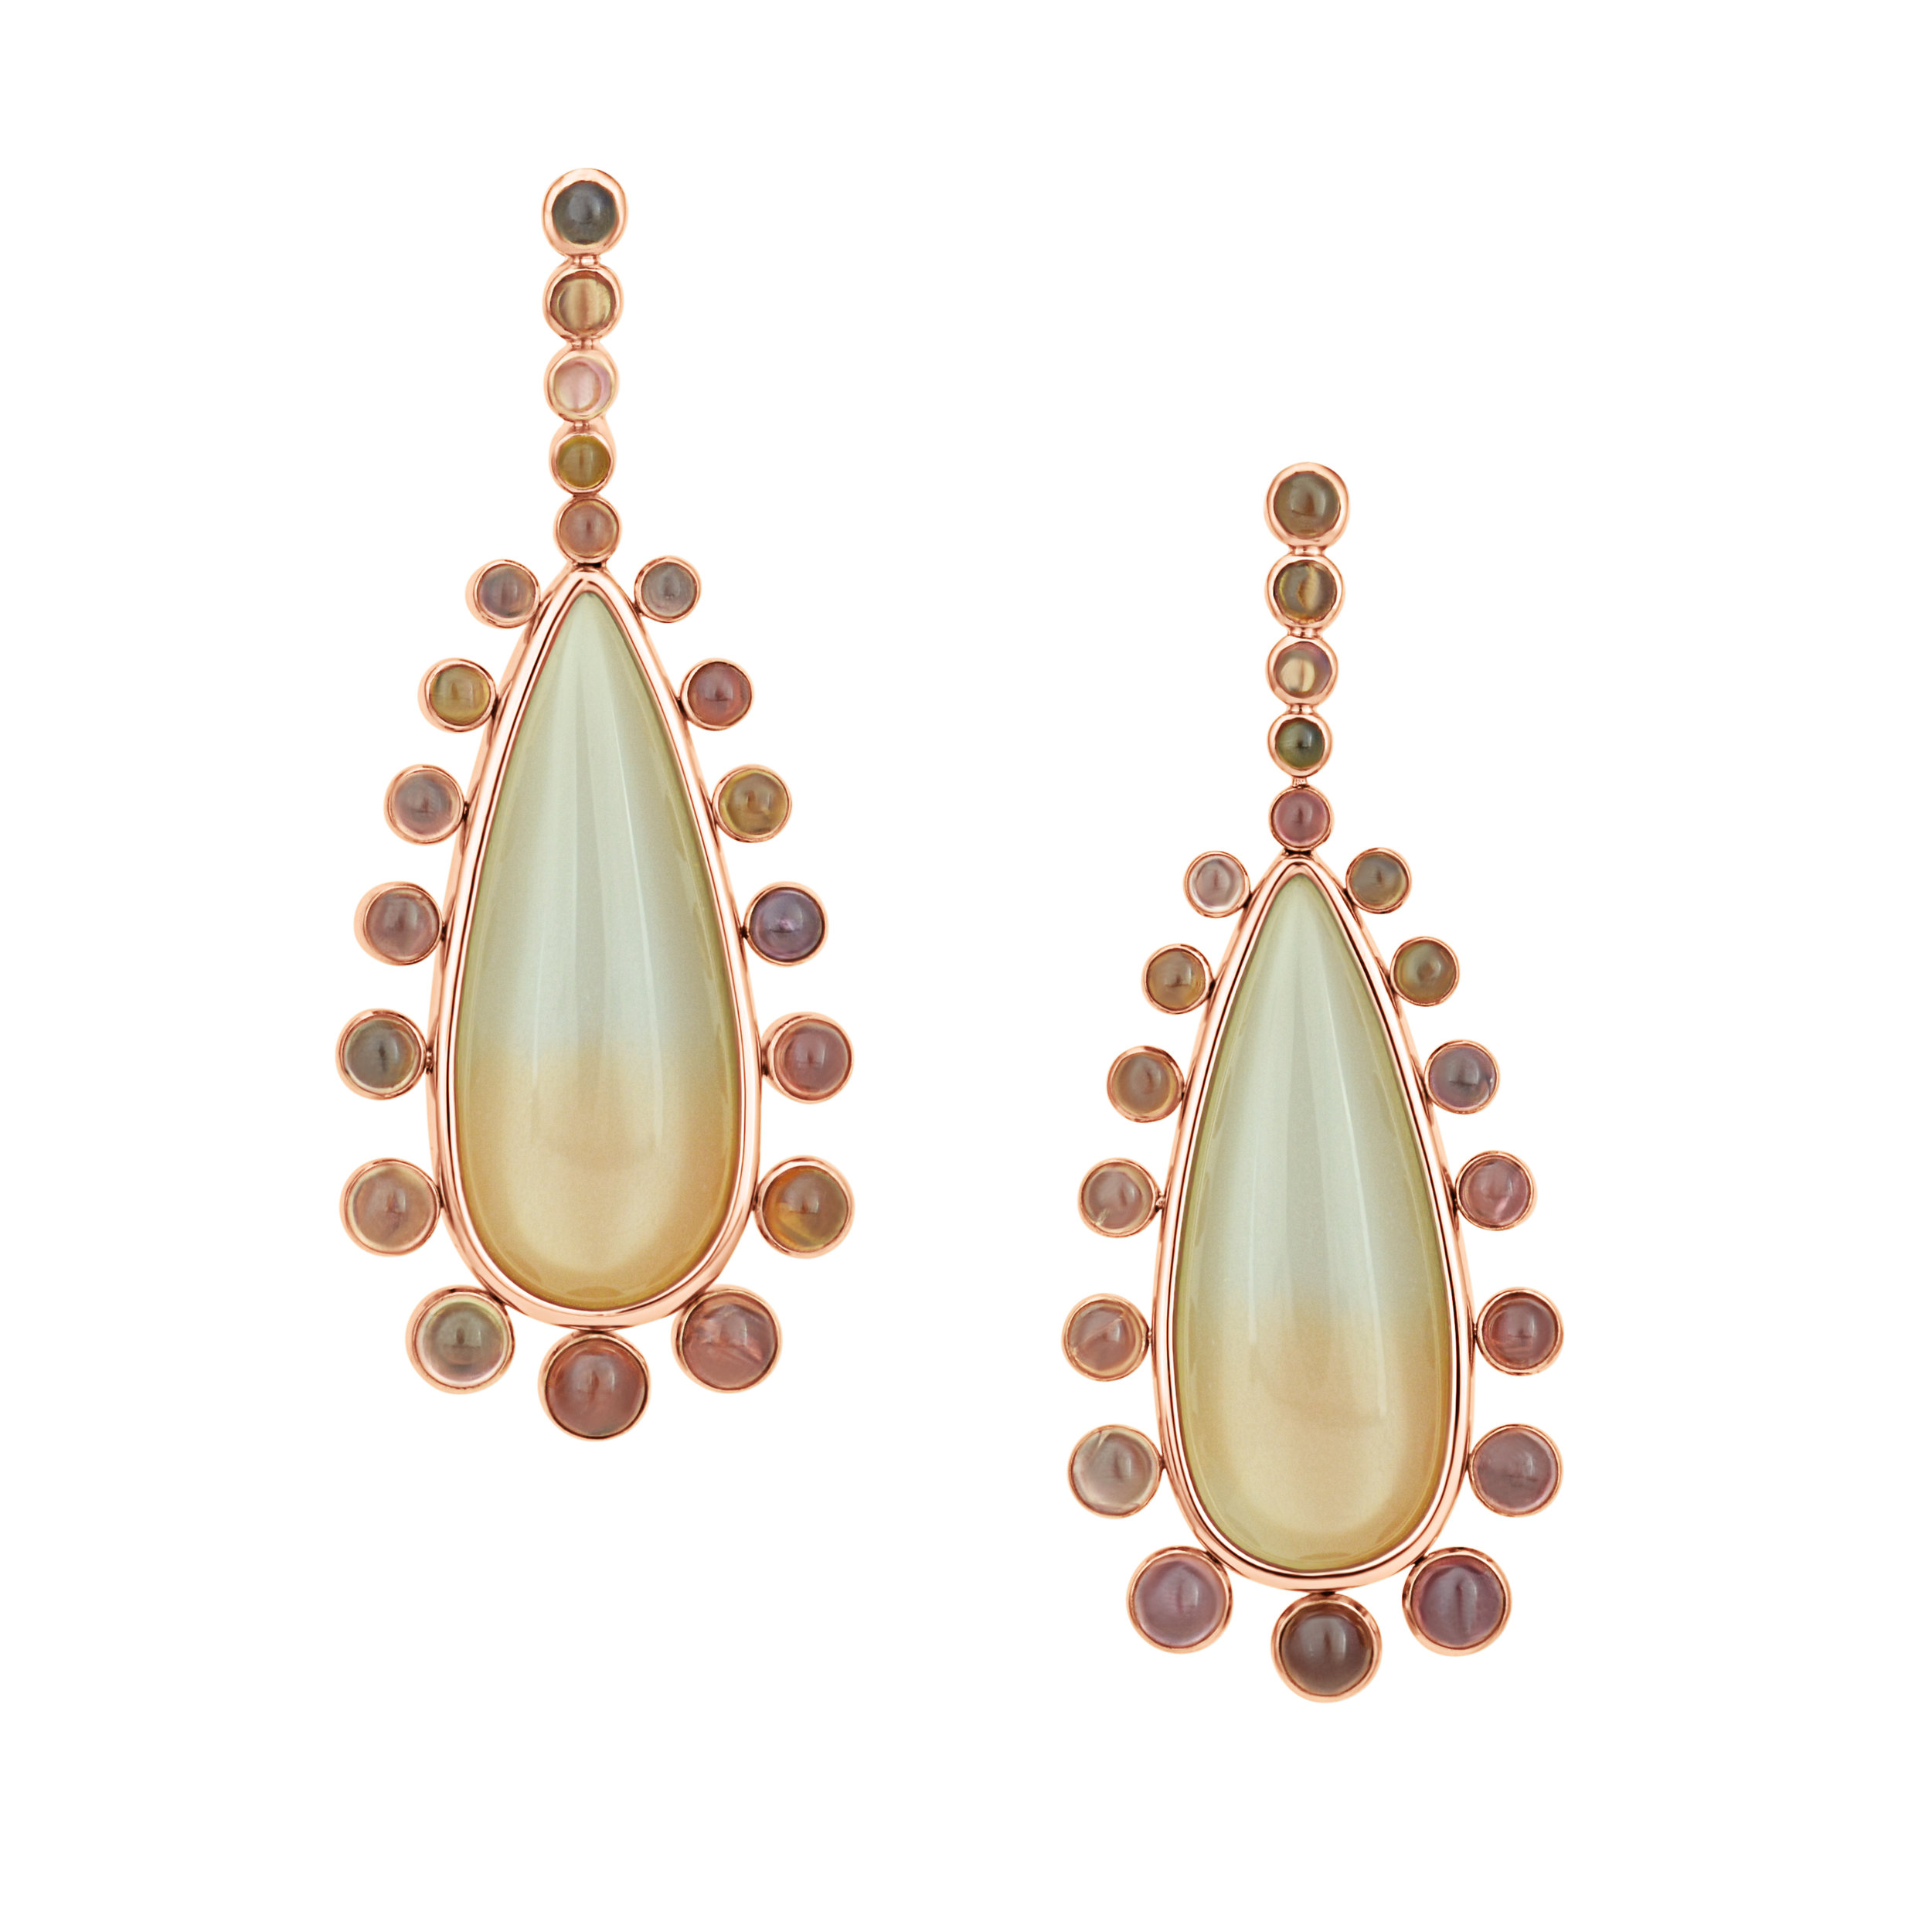 VRAM OAK Bi-color Moonstone Earrings.jpg